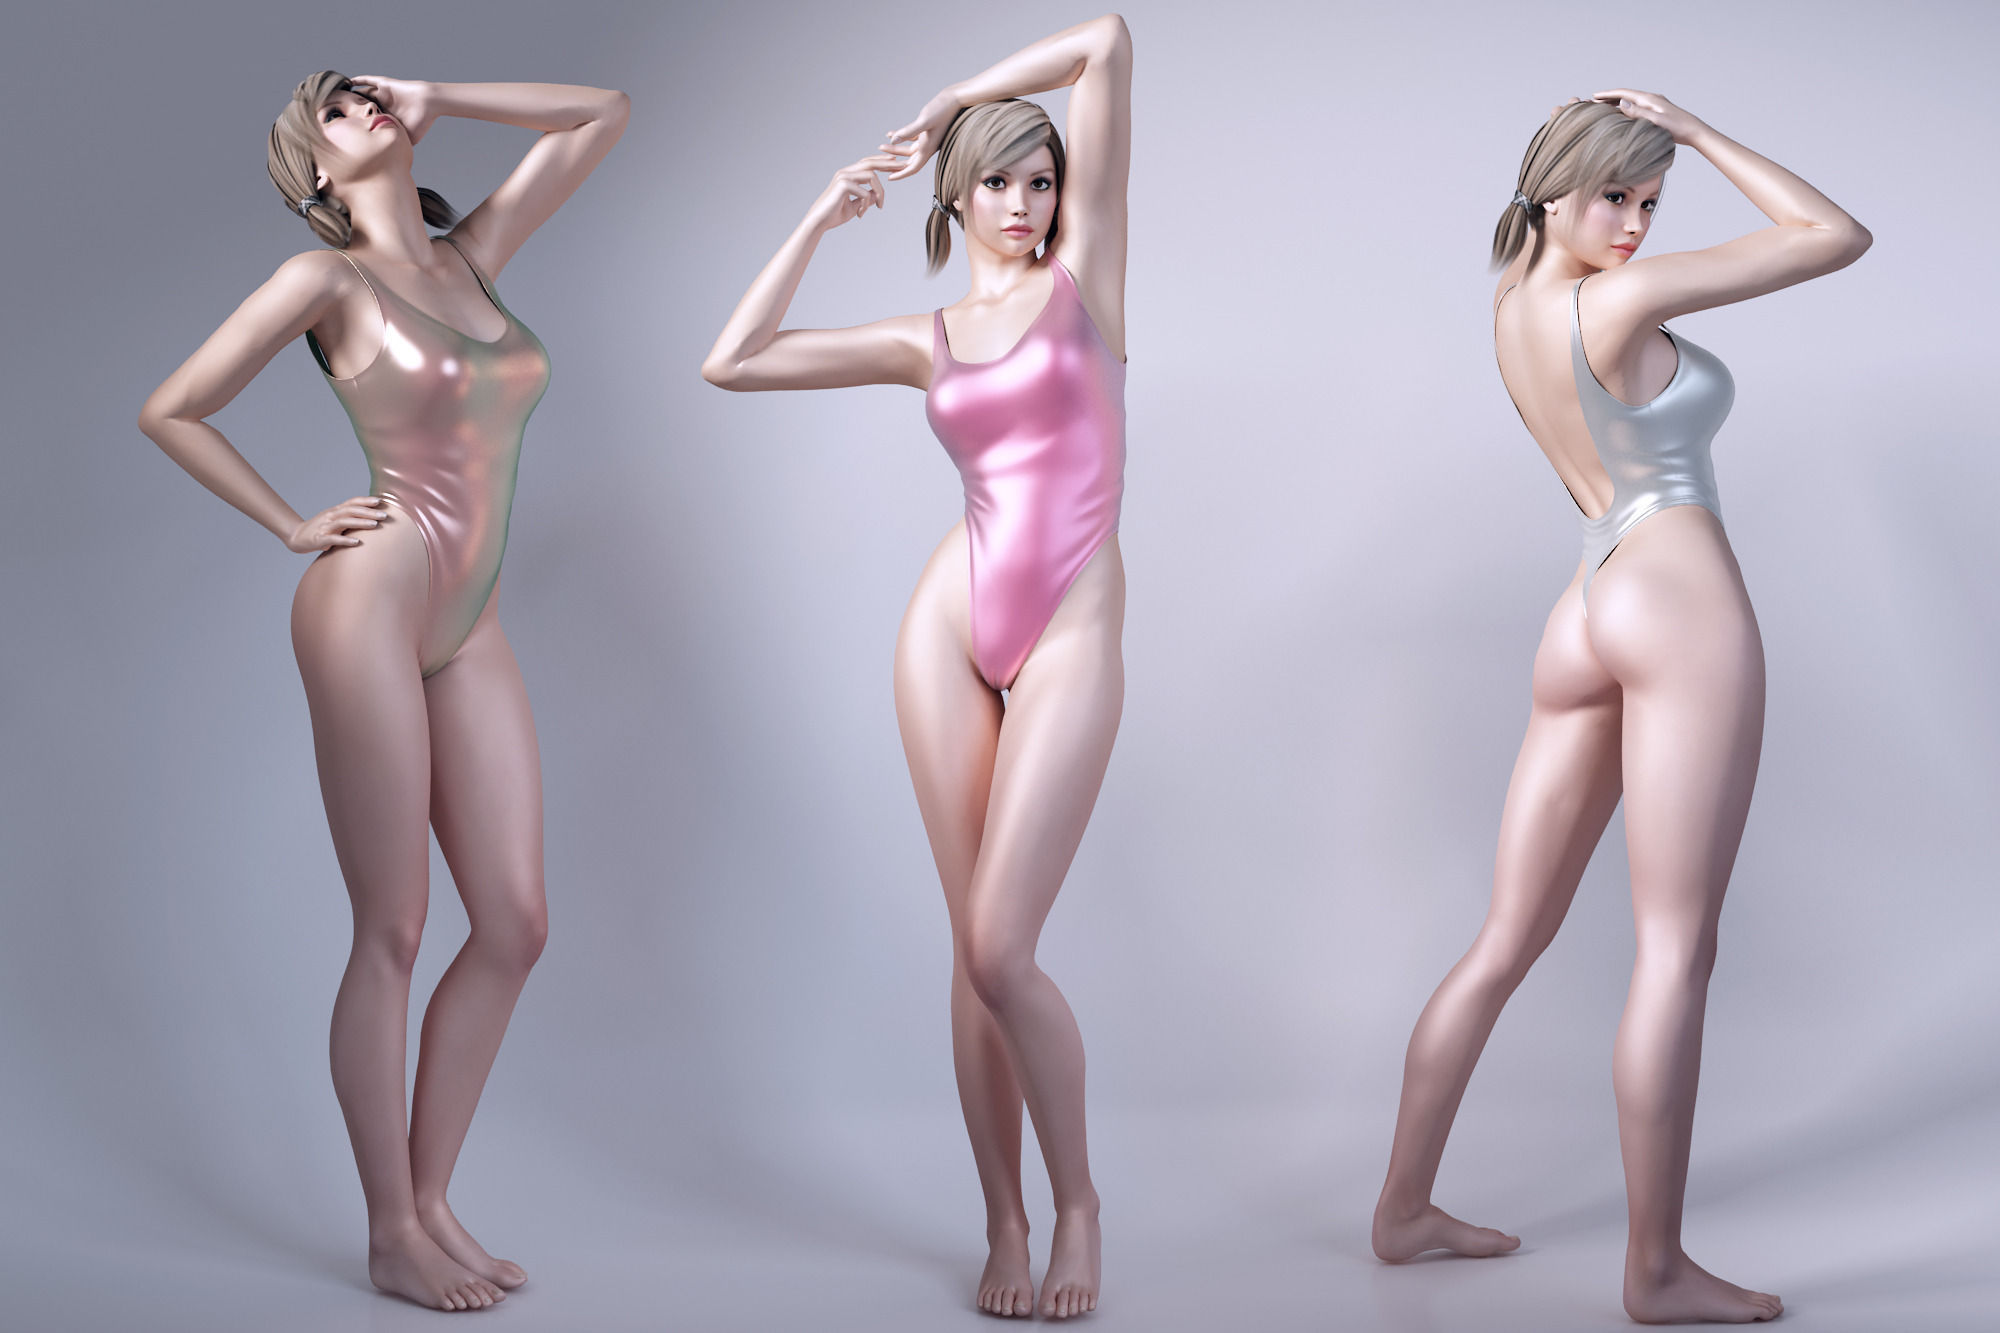 Daz 3d female models nude adult tight beauties